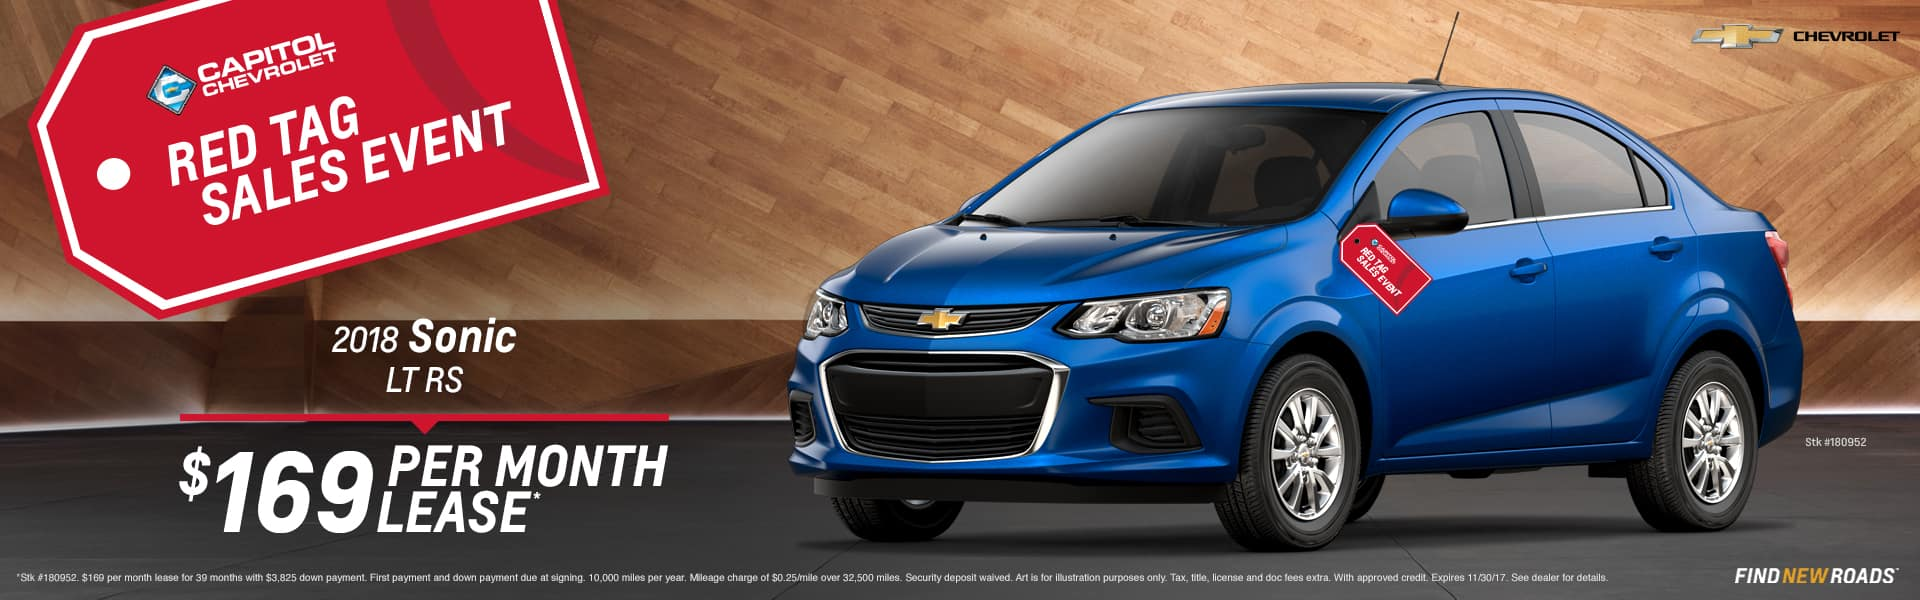 Chevy Dealership Austin Tx >> Capitol Chevrolet | New Chevy and Used Auto Dealership in Austin, TX